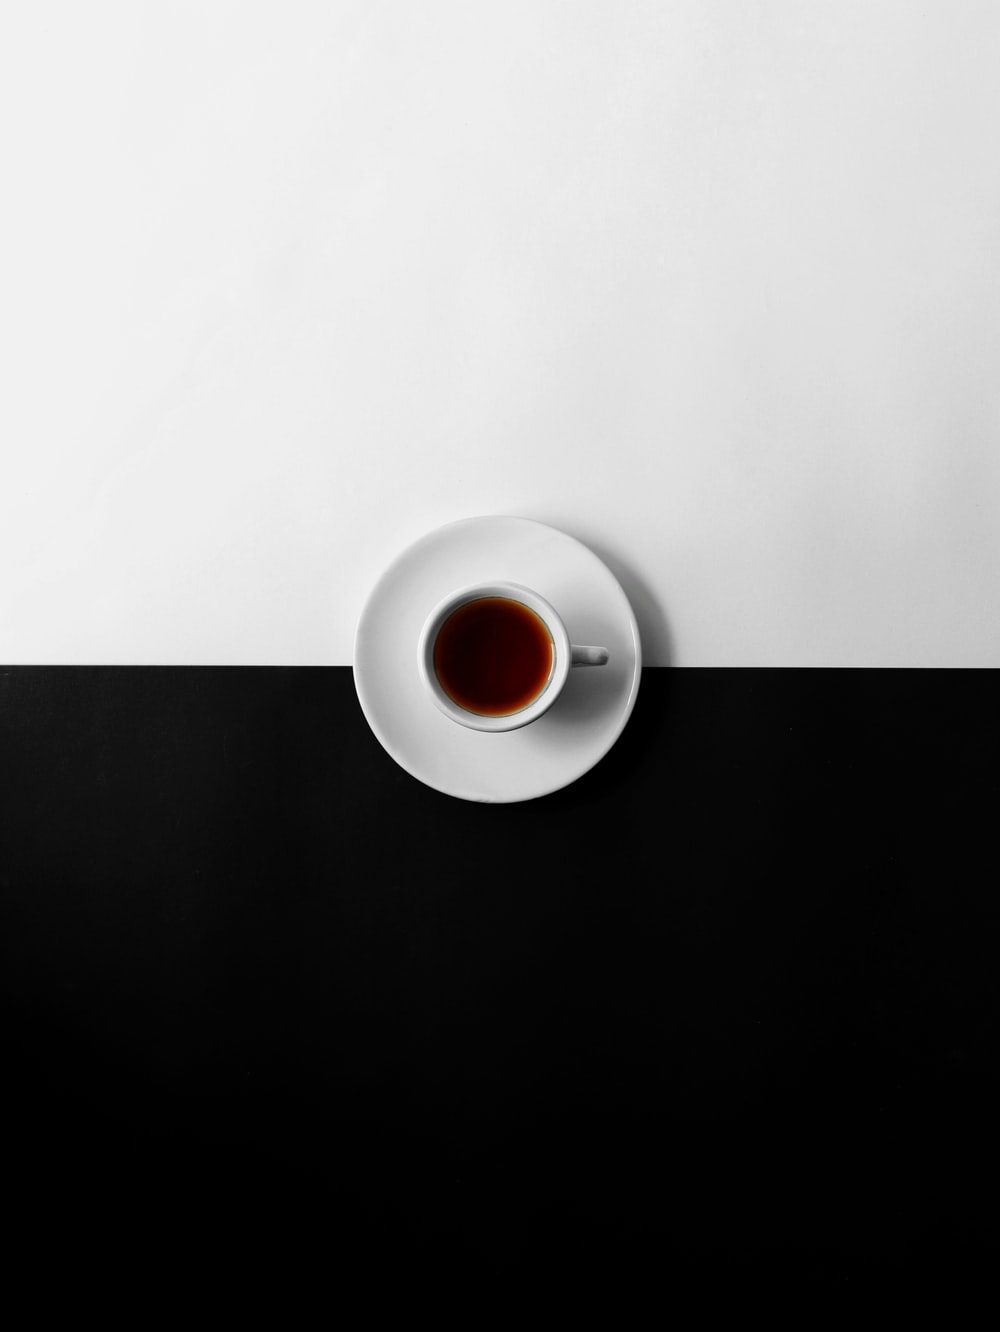 flat view photography of cup of coffee